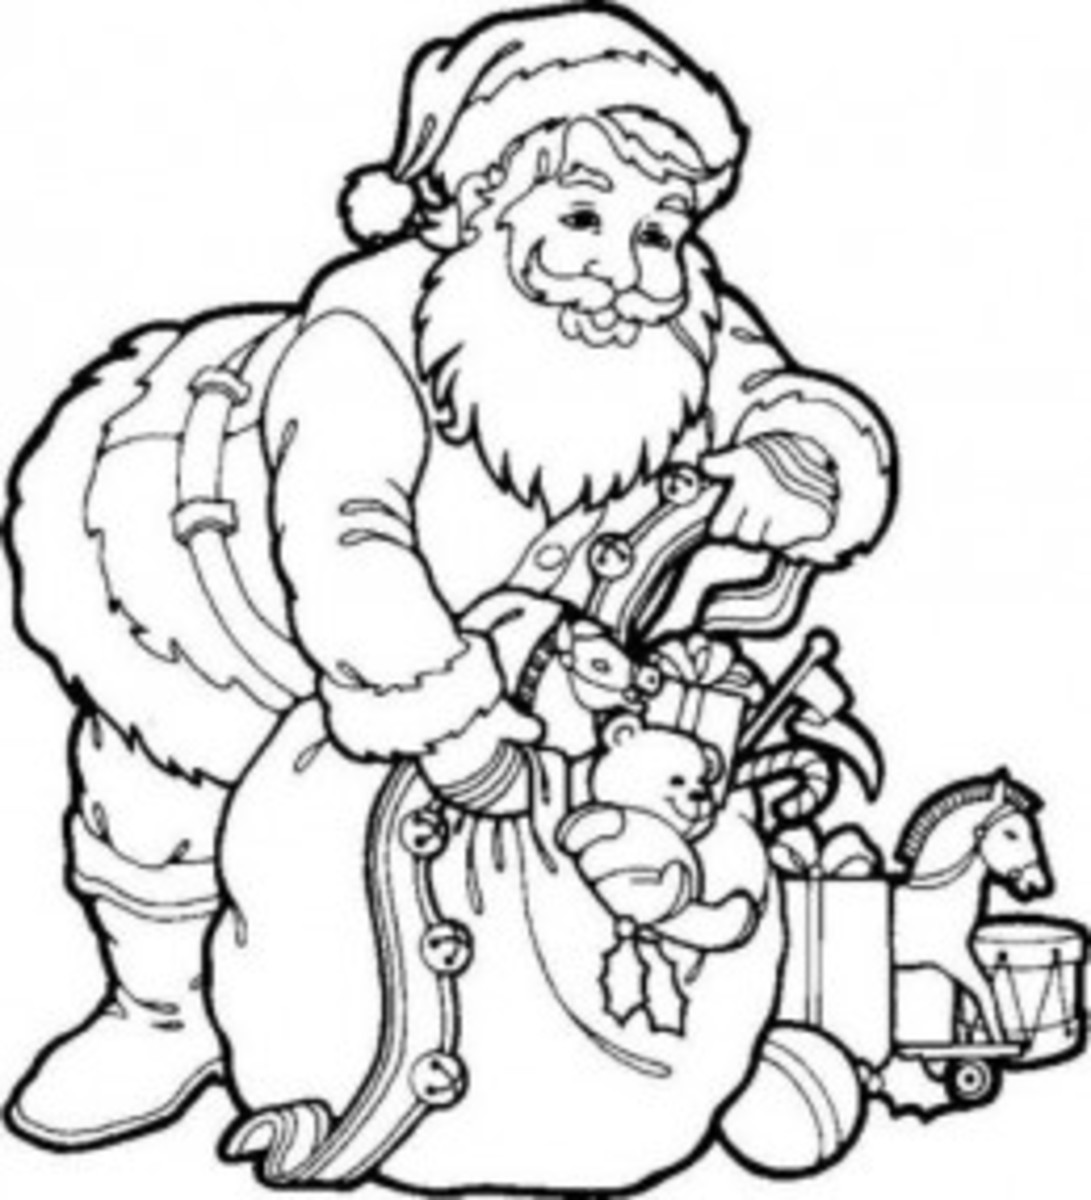 Santa Claus Coloring Pages Free Colouring Pictures to Print - loading the bag